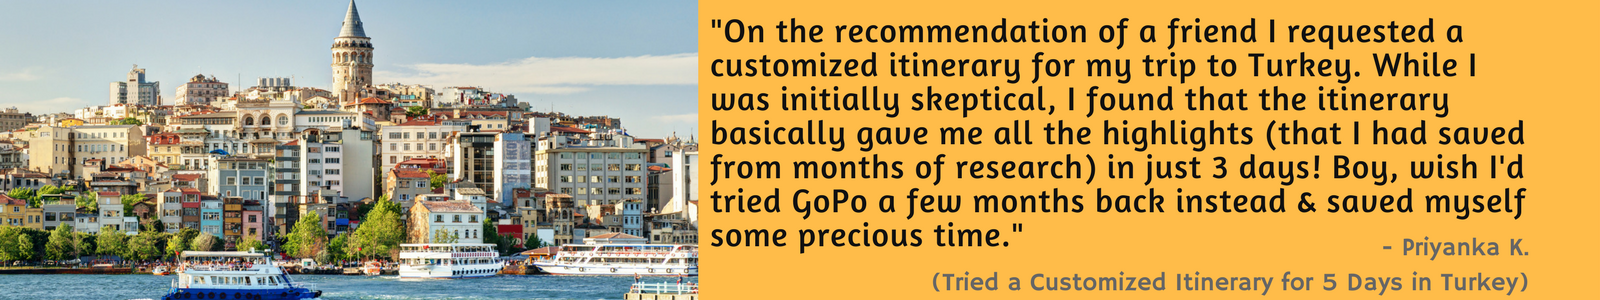 Testimonial from a user for a Customized Itinerary to Turkey- on GoPo